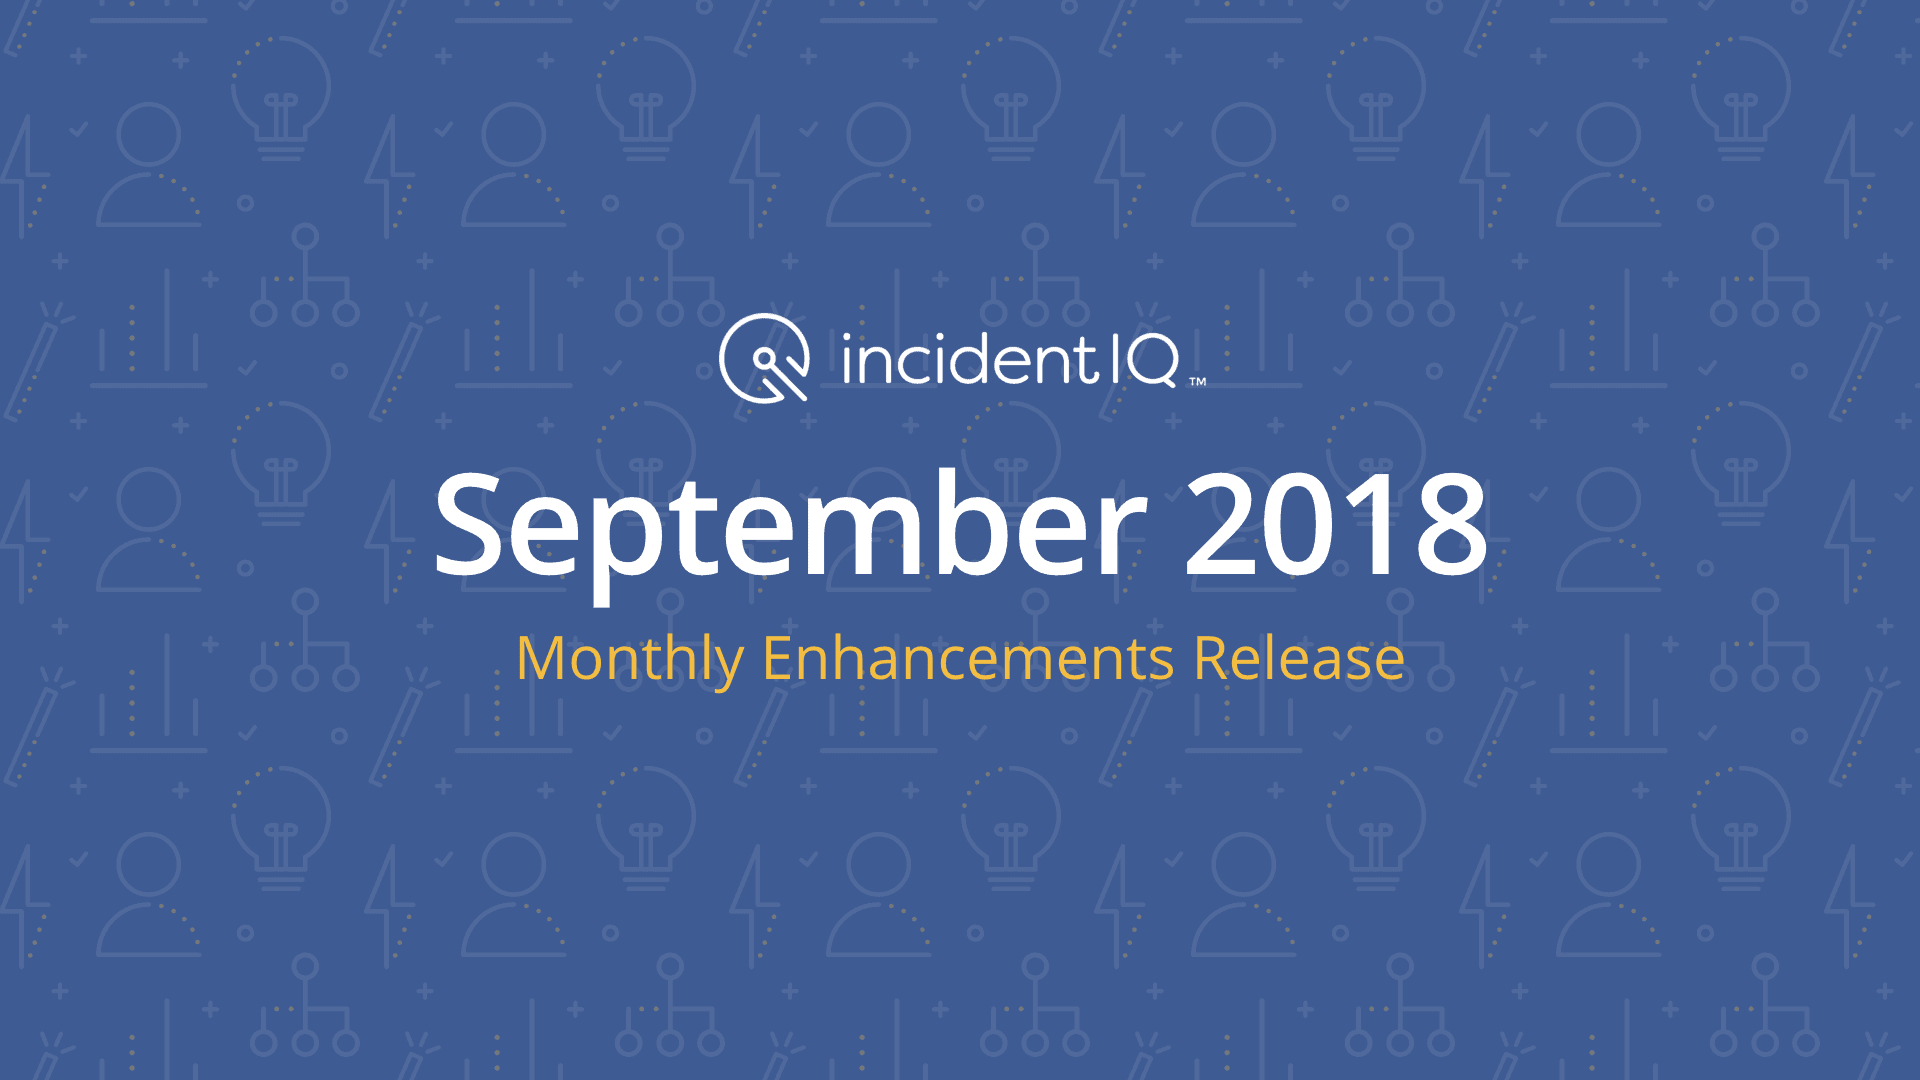 September 2018 Monthly Enhancements Release